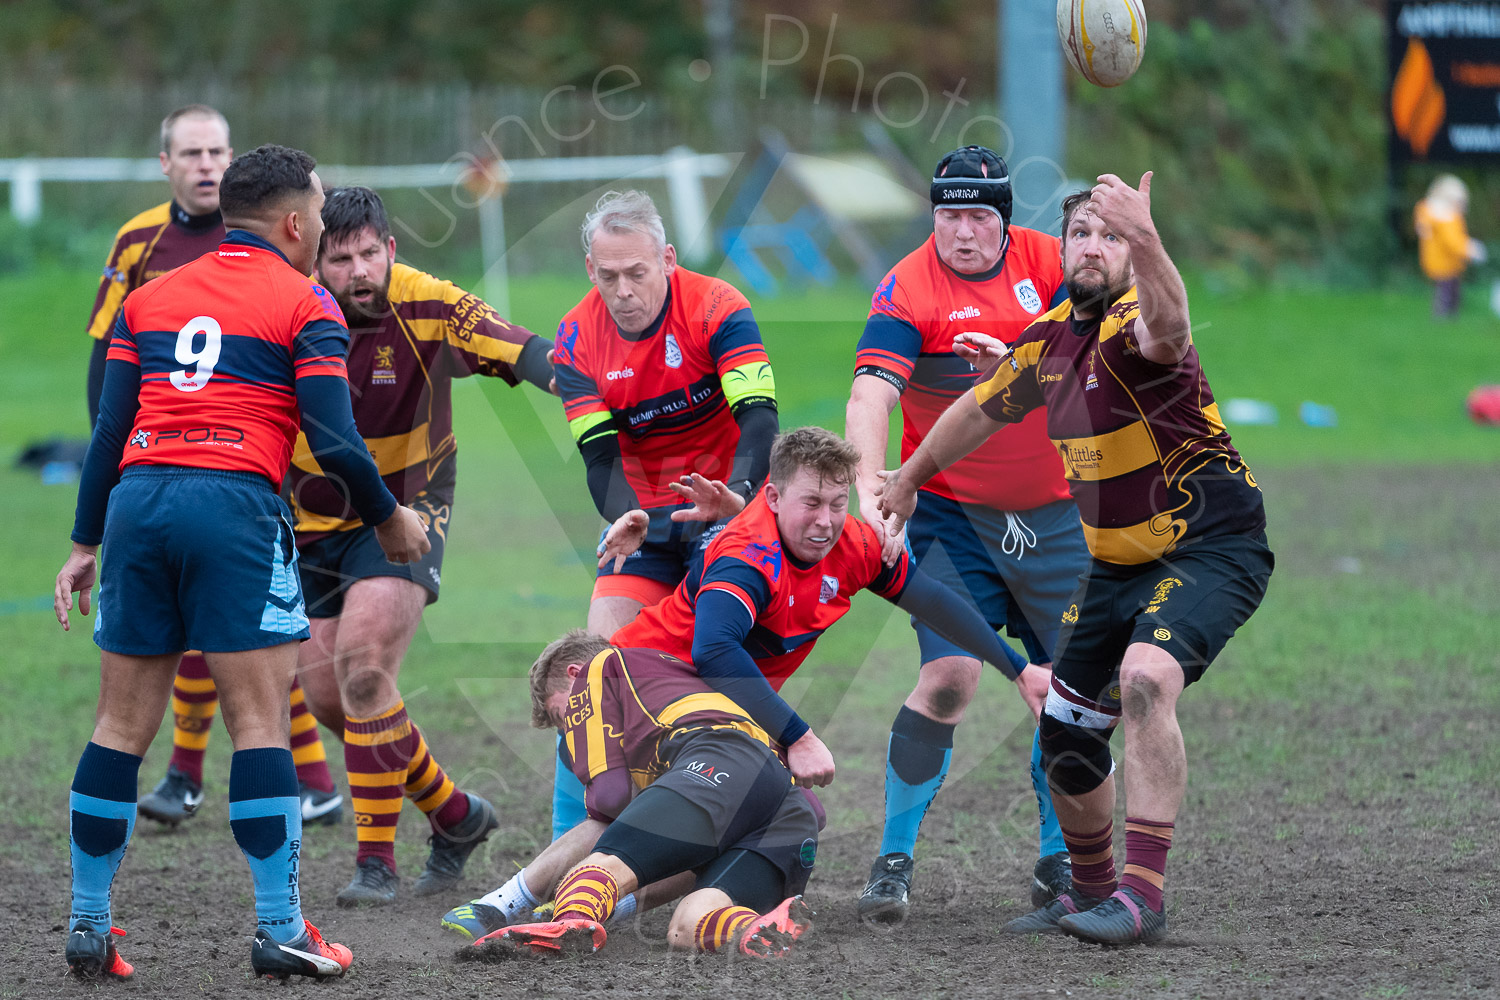 20181027 Amp Extras vs St Neots 2nd XV #2173